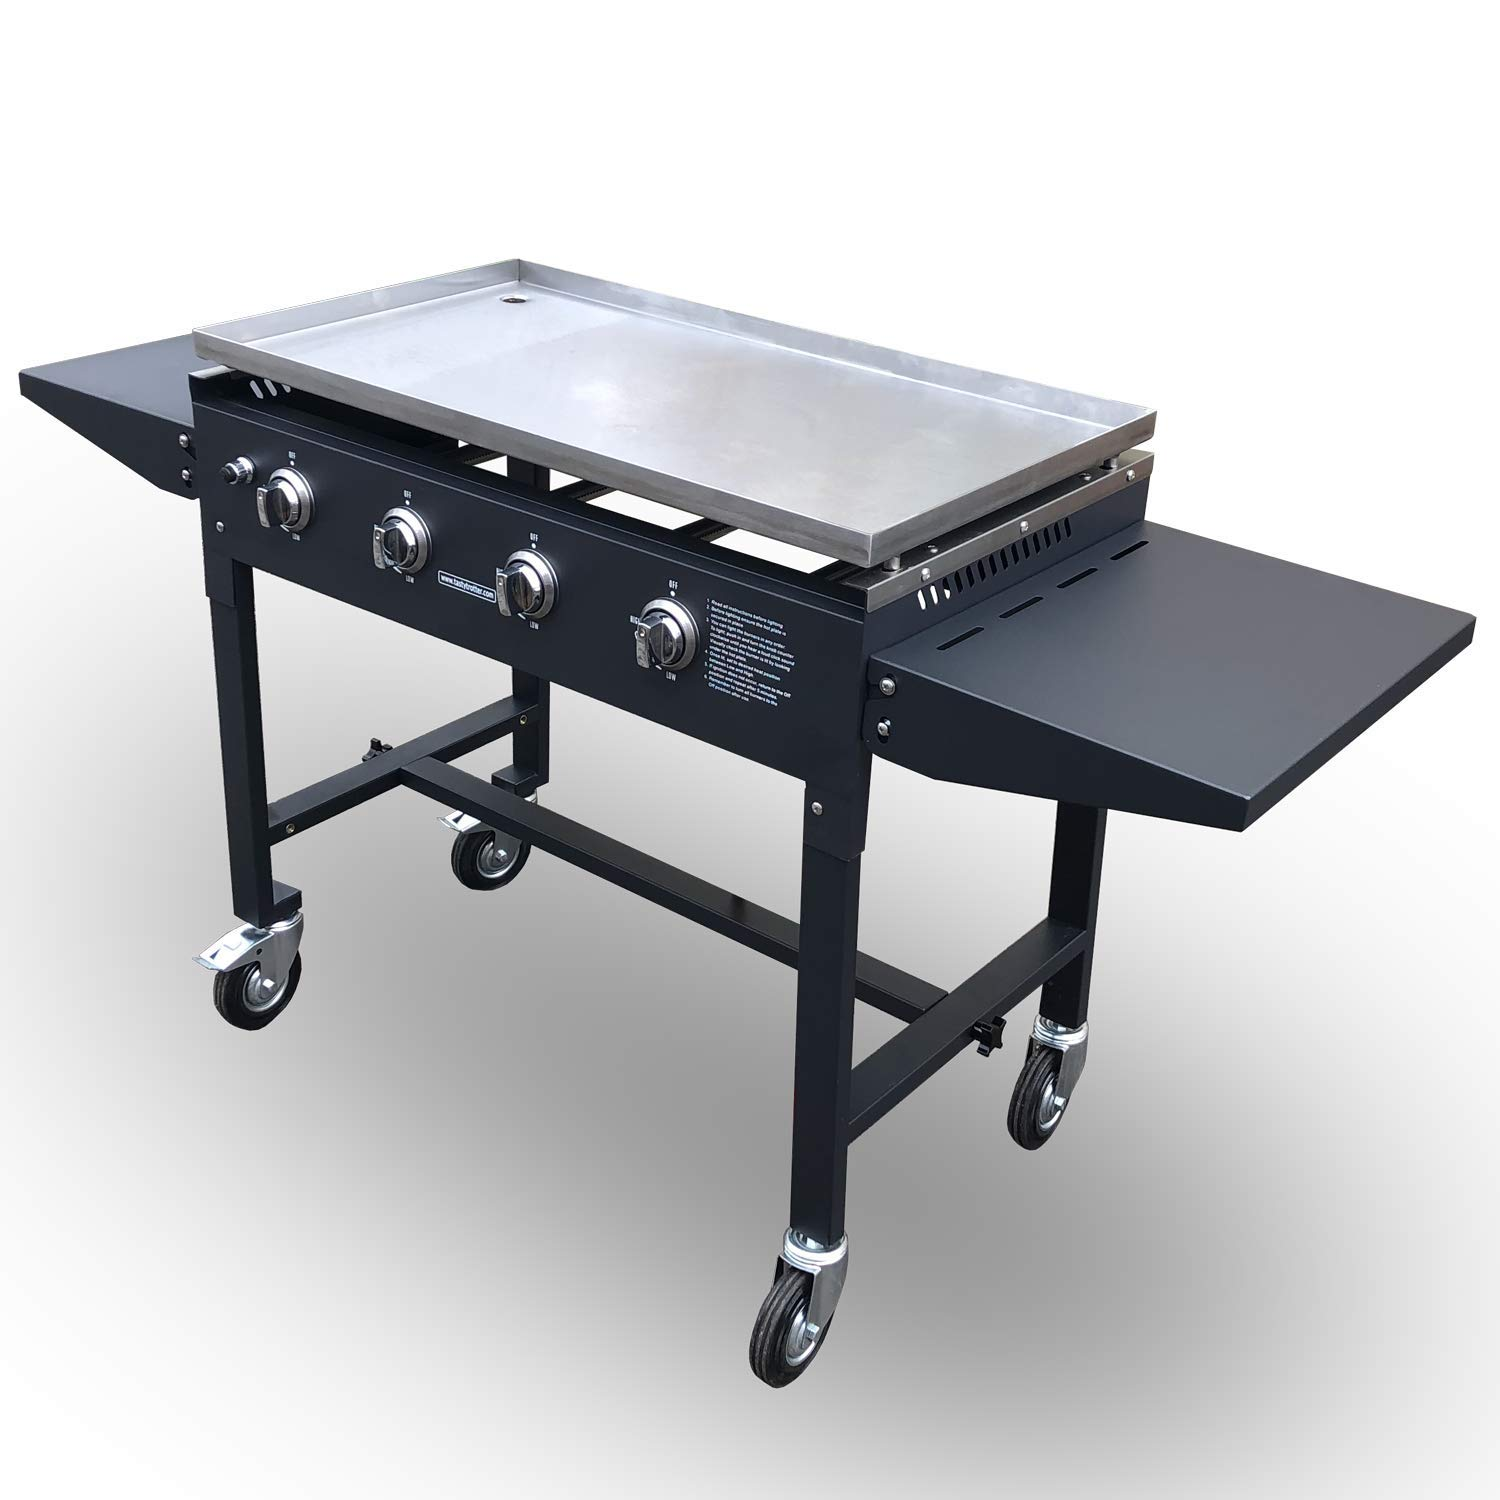 Tasty Trotter Griddle - Hot Plate - BBQ - Portable Barbecue - Ideal for bulk production of burgers, bacon, eggs, etc. - Will keep food hot without too much drying out - 4 Burners LPG - Model TT04